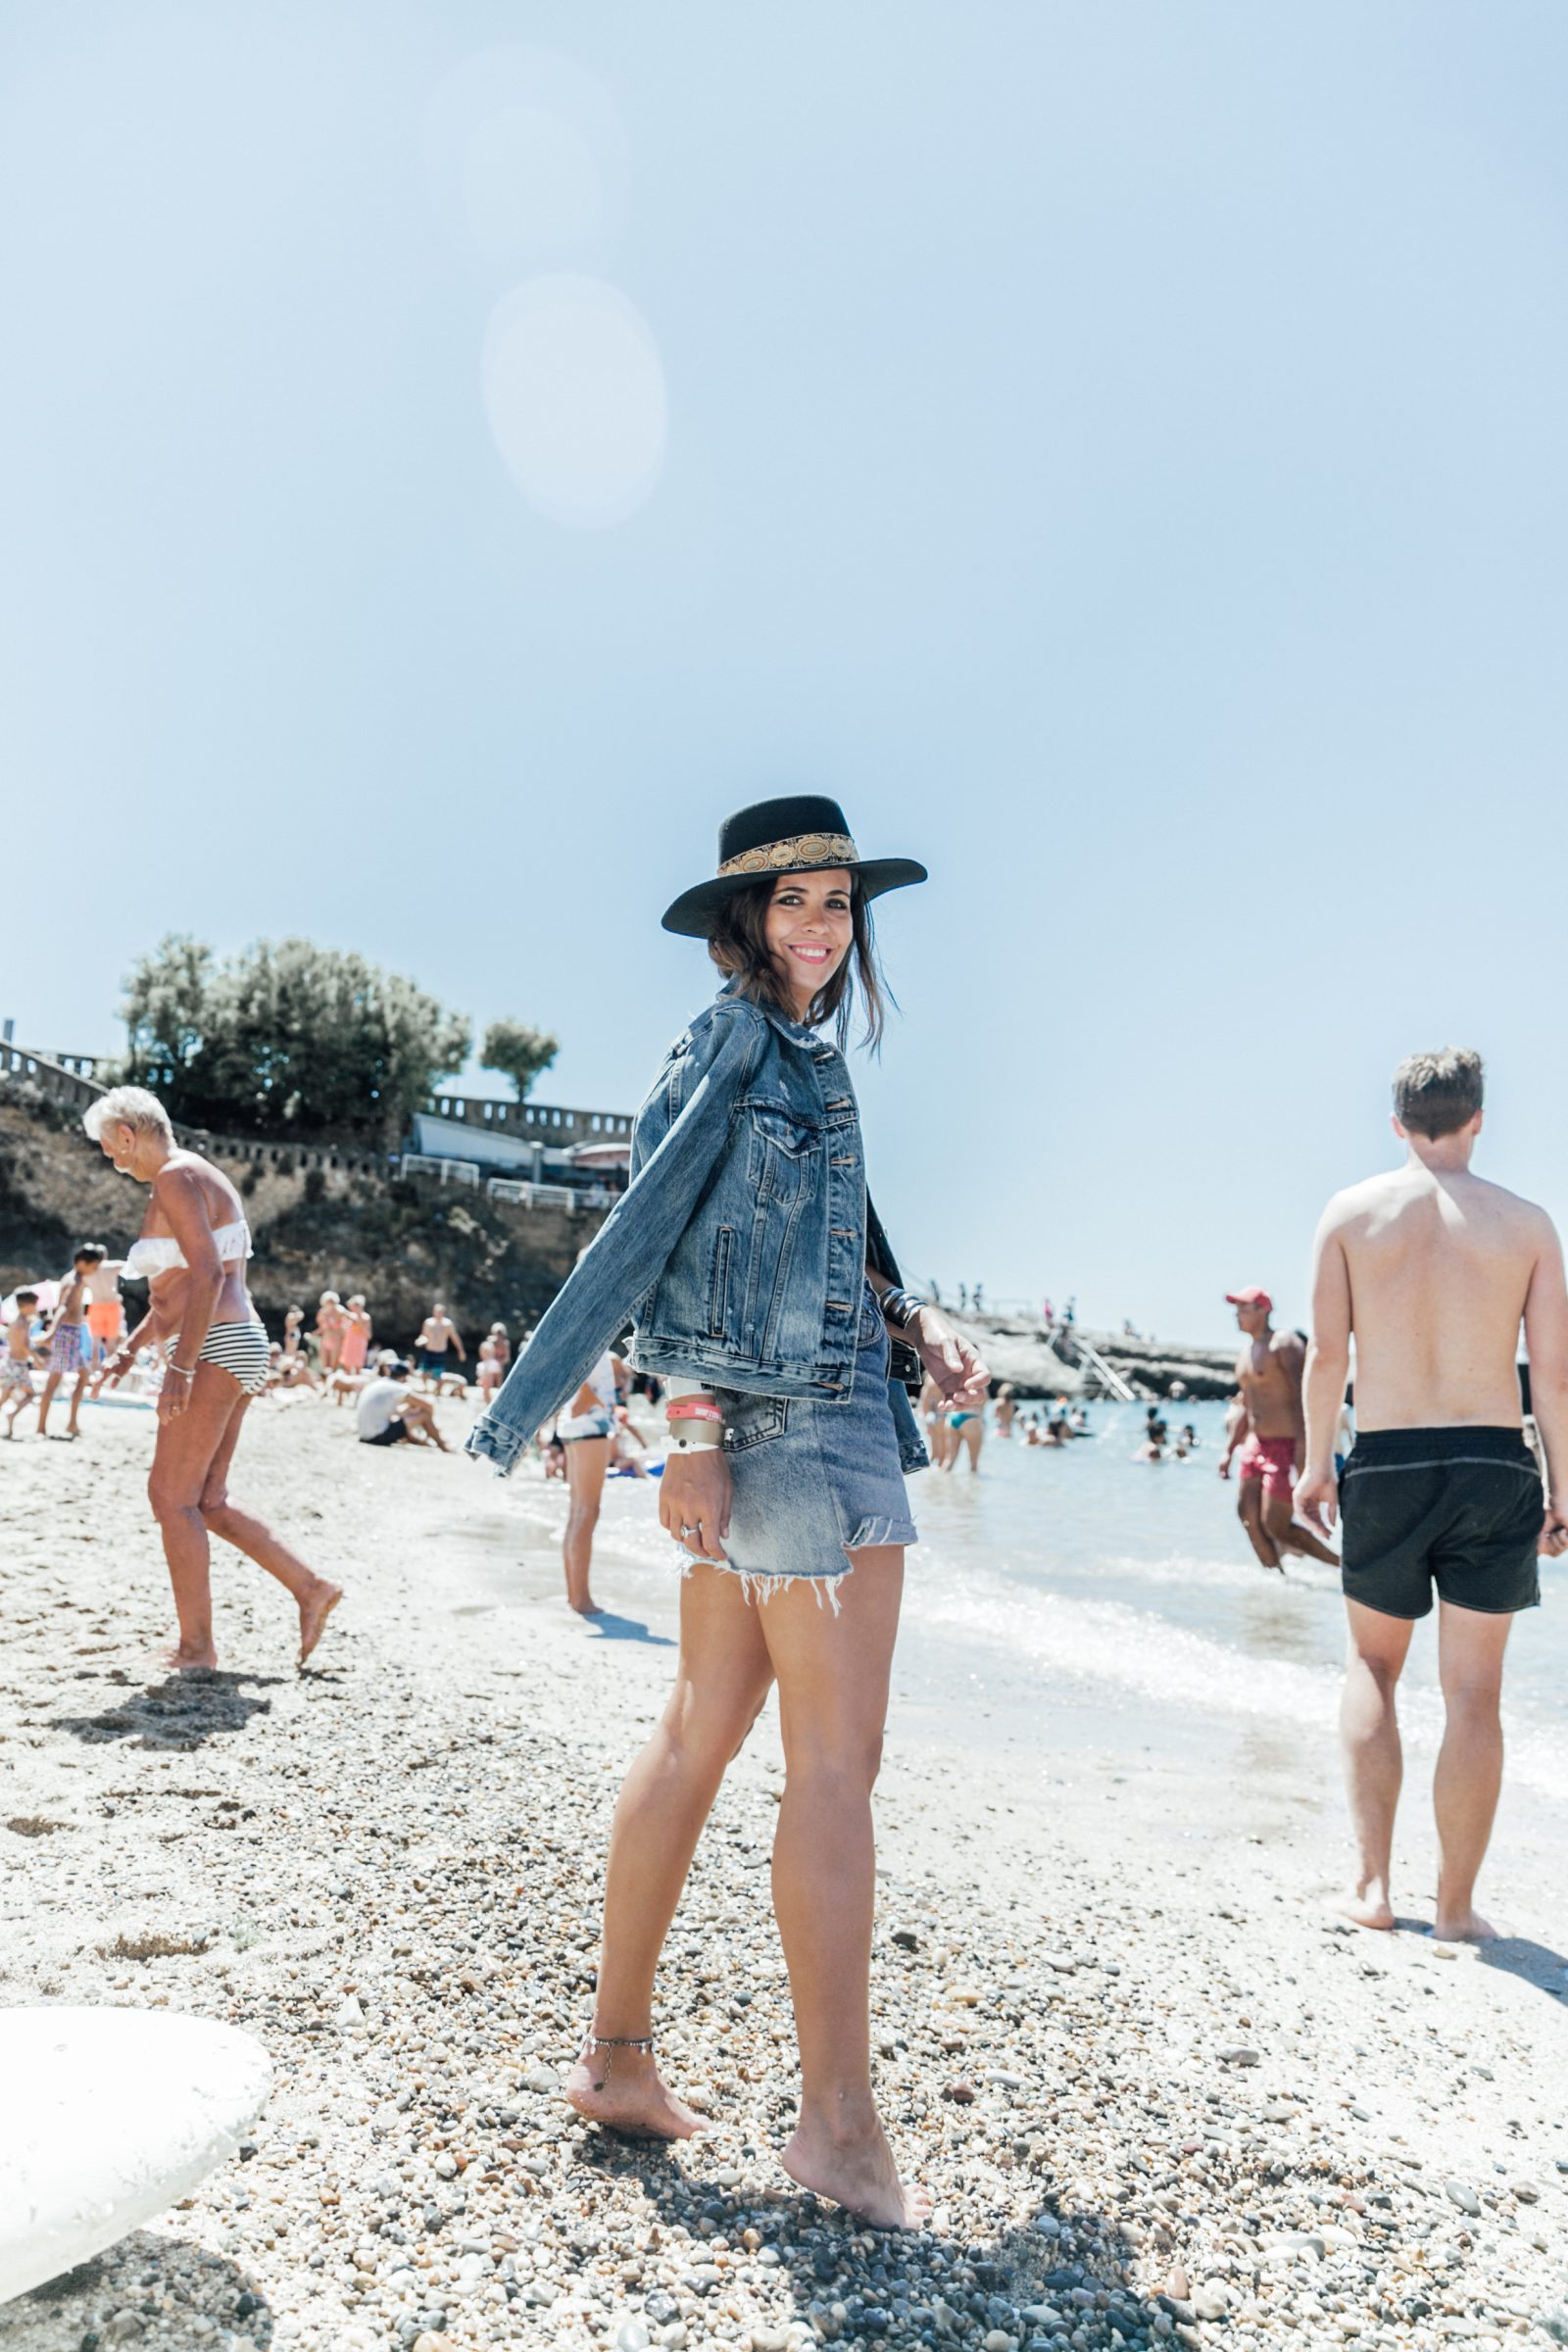 Biarritz-Big_Festival-Live_in_Levis-Double_Denim-Denim_Skirt-Denim_Jacket-Nude_Top-Lack_Of_Color_Hat-Outfit-Summer-Street_Style-29